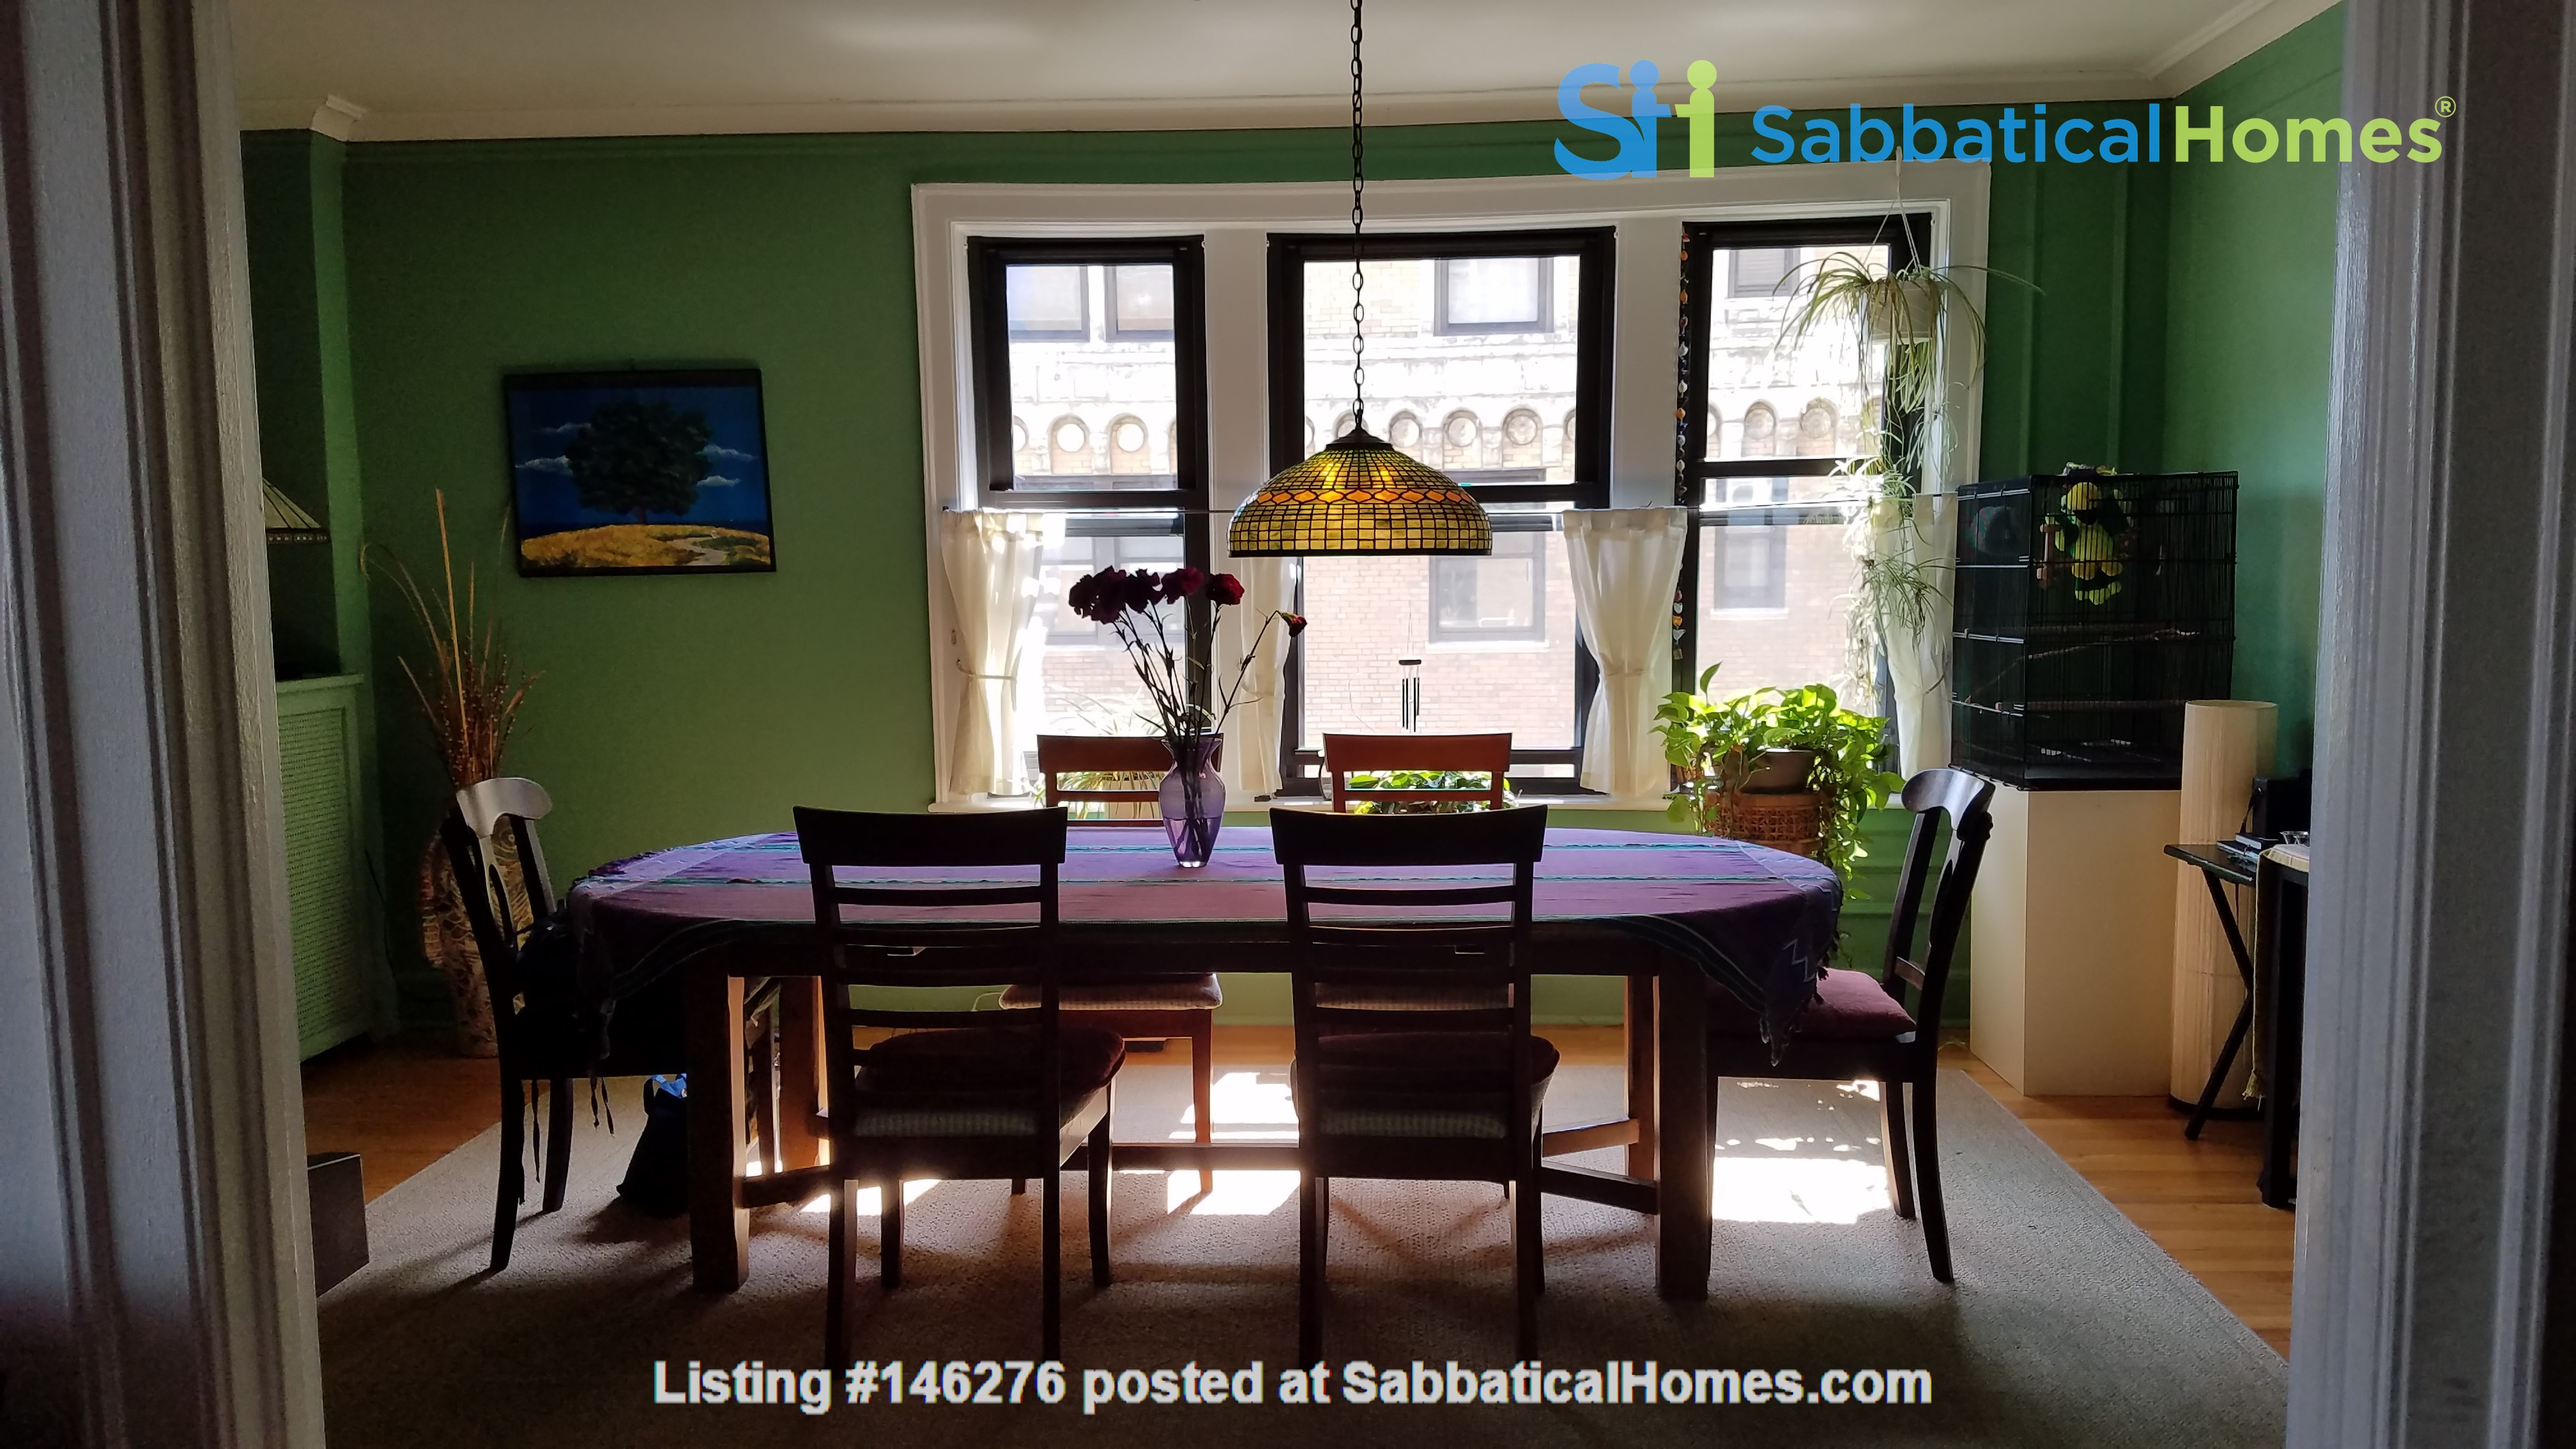 2 Bed/2 Bath Fully Furnished Lakefront Apartment Home Rental in Chicago 6